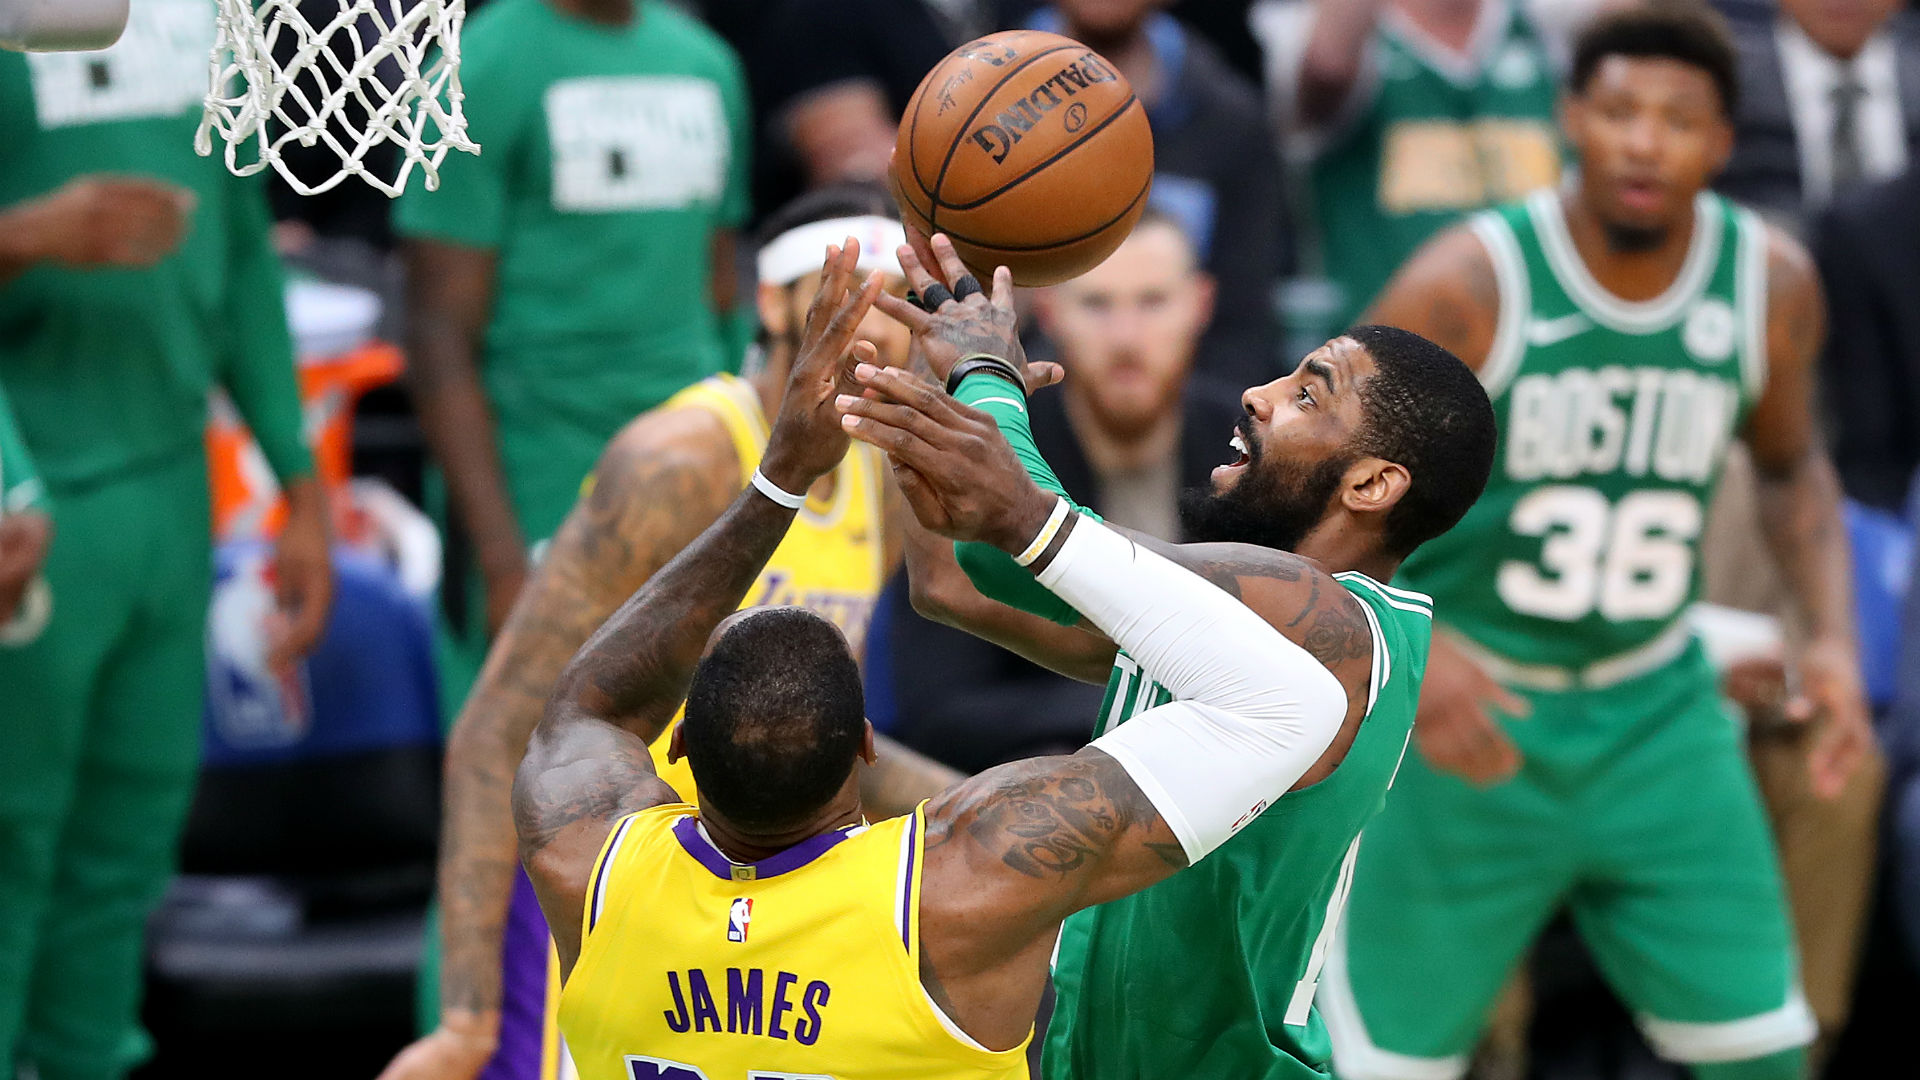 NBA free agency rumors: LeBron James likes Instagram photo of Kyrie